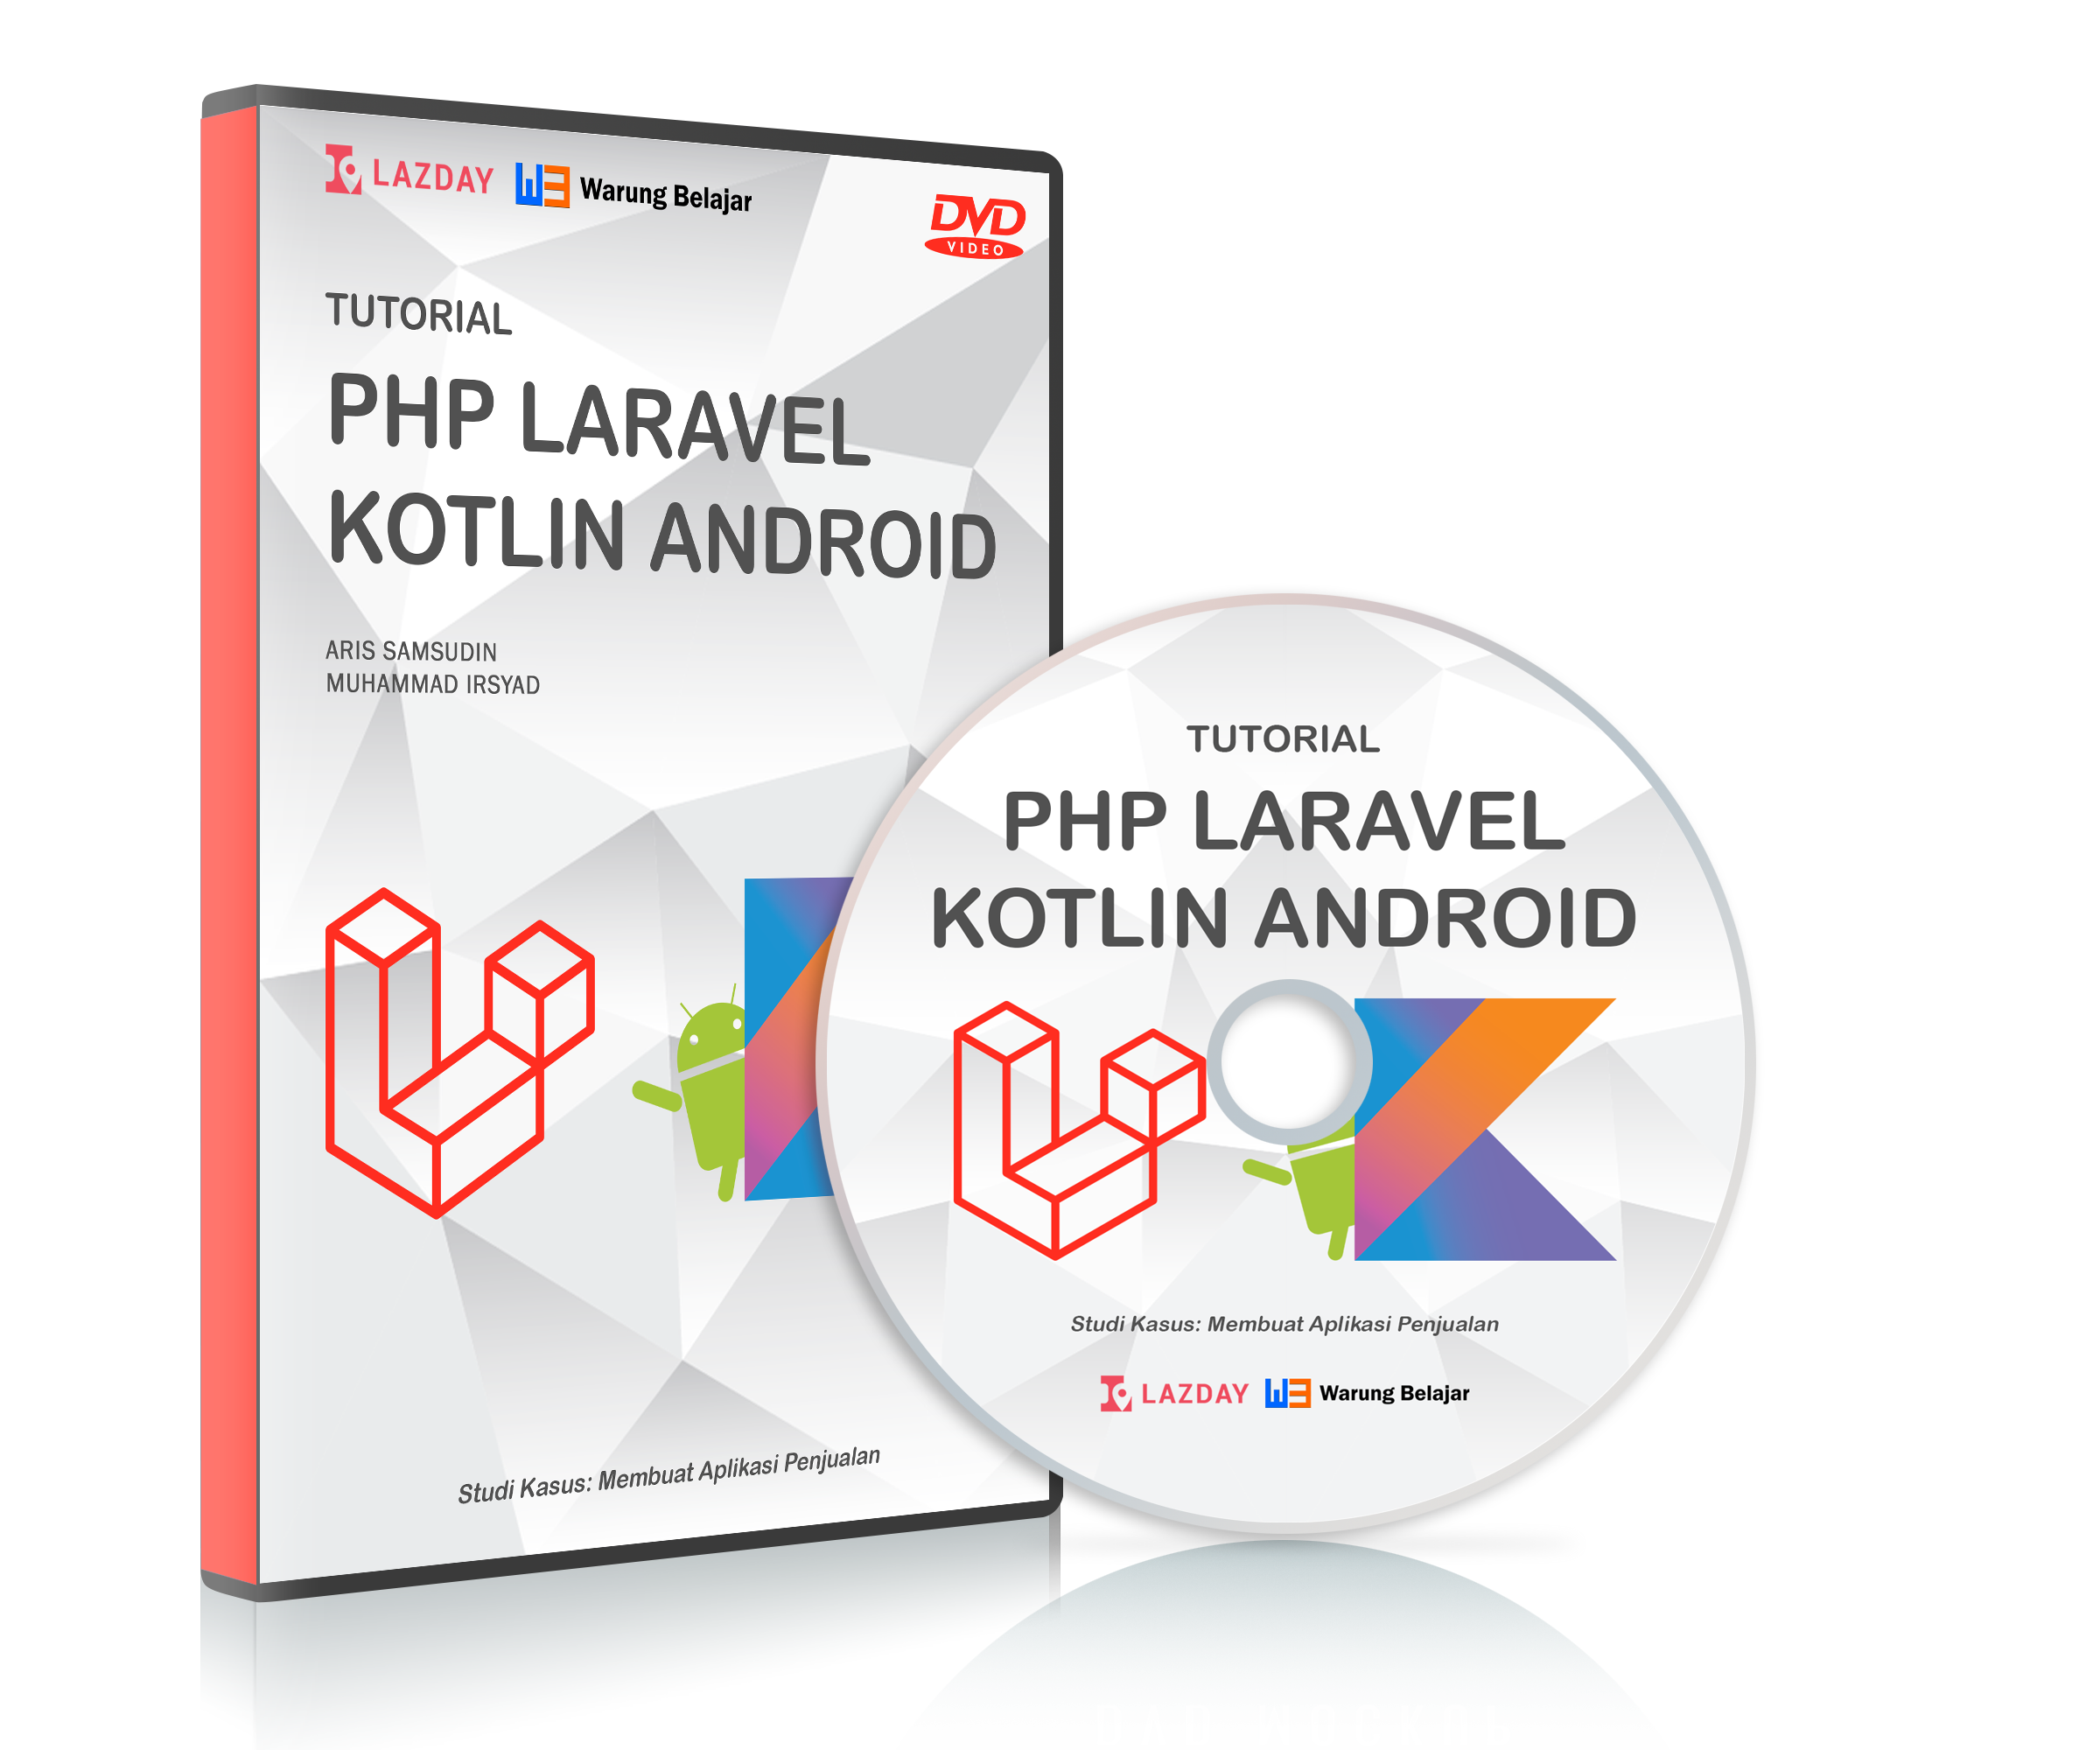 DVD Tutorial Belajar Laravel & Kotlin